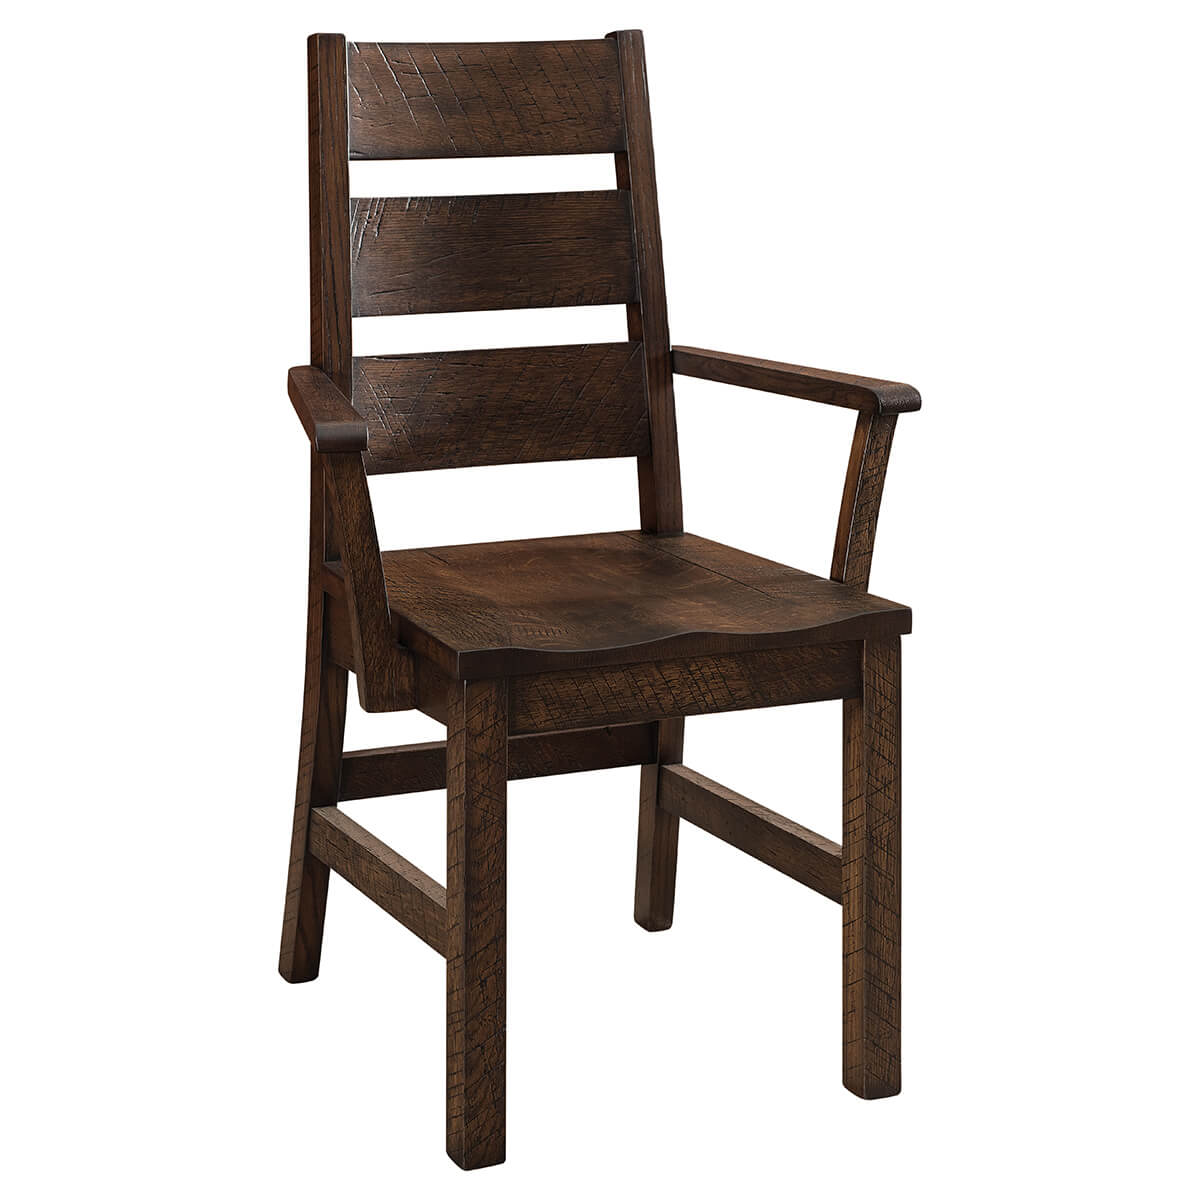 dr arm chairs